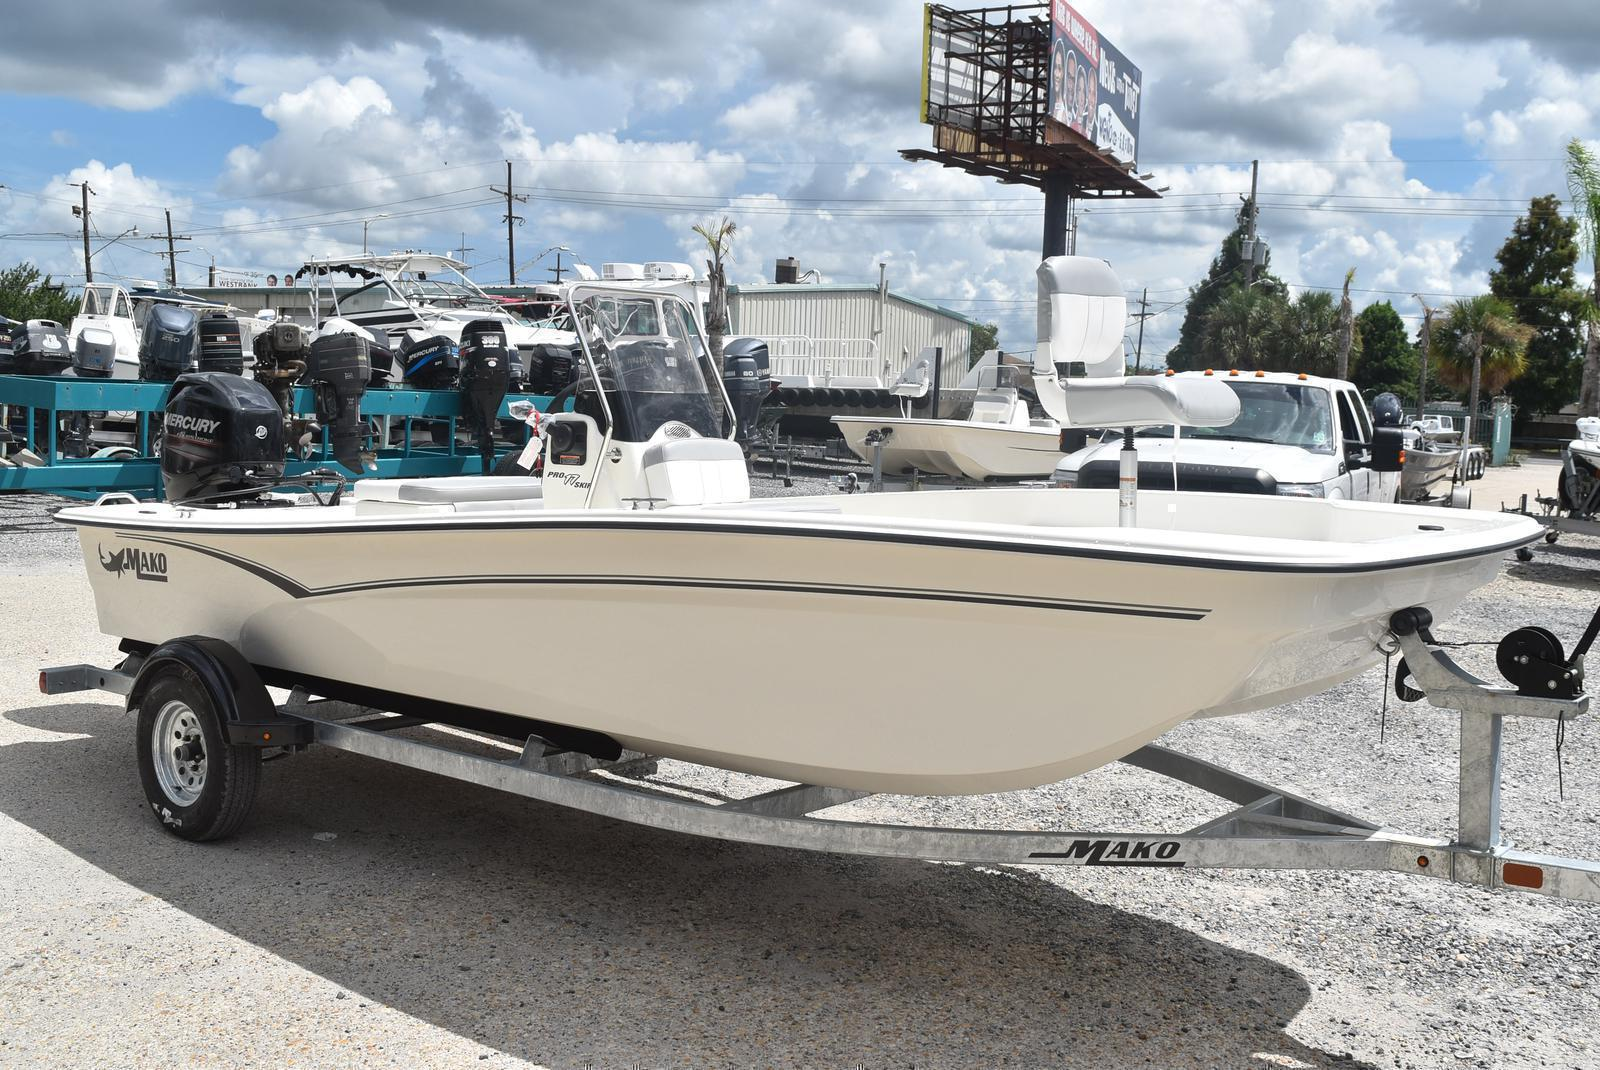 2020 Mako boat for sale, model of the boat is Pro Skiff 17, 75 ELPT & Image # 625 of 702